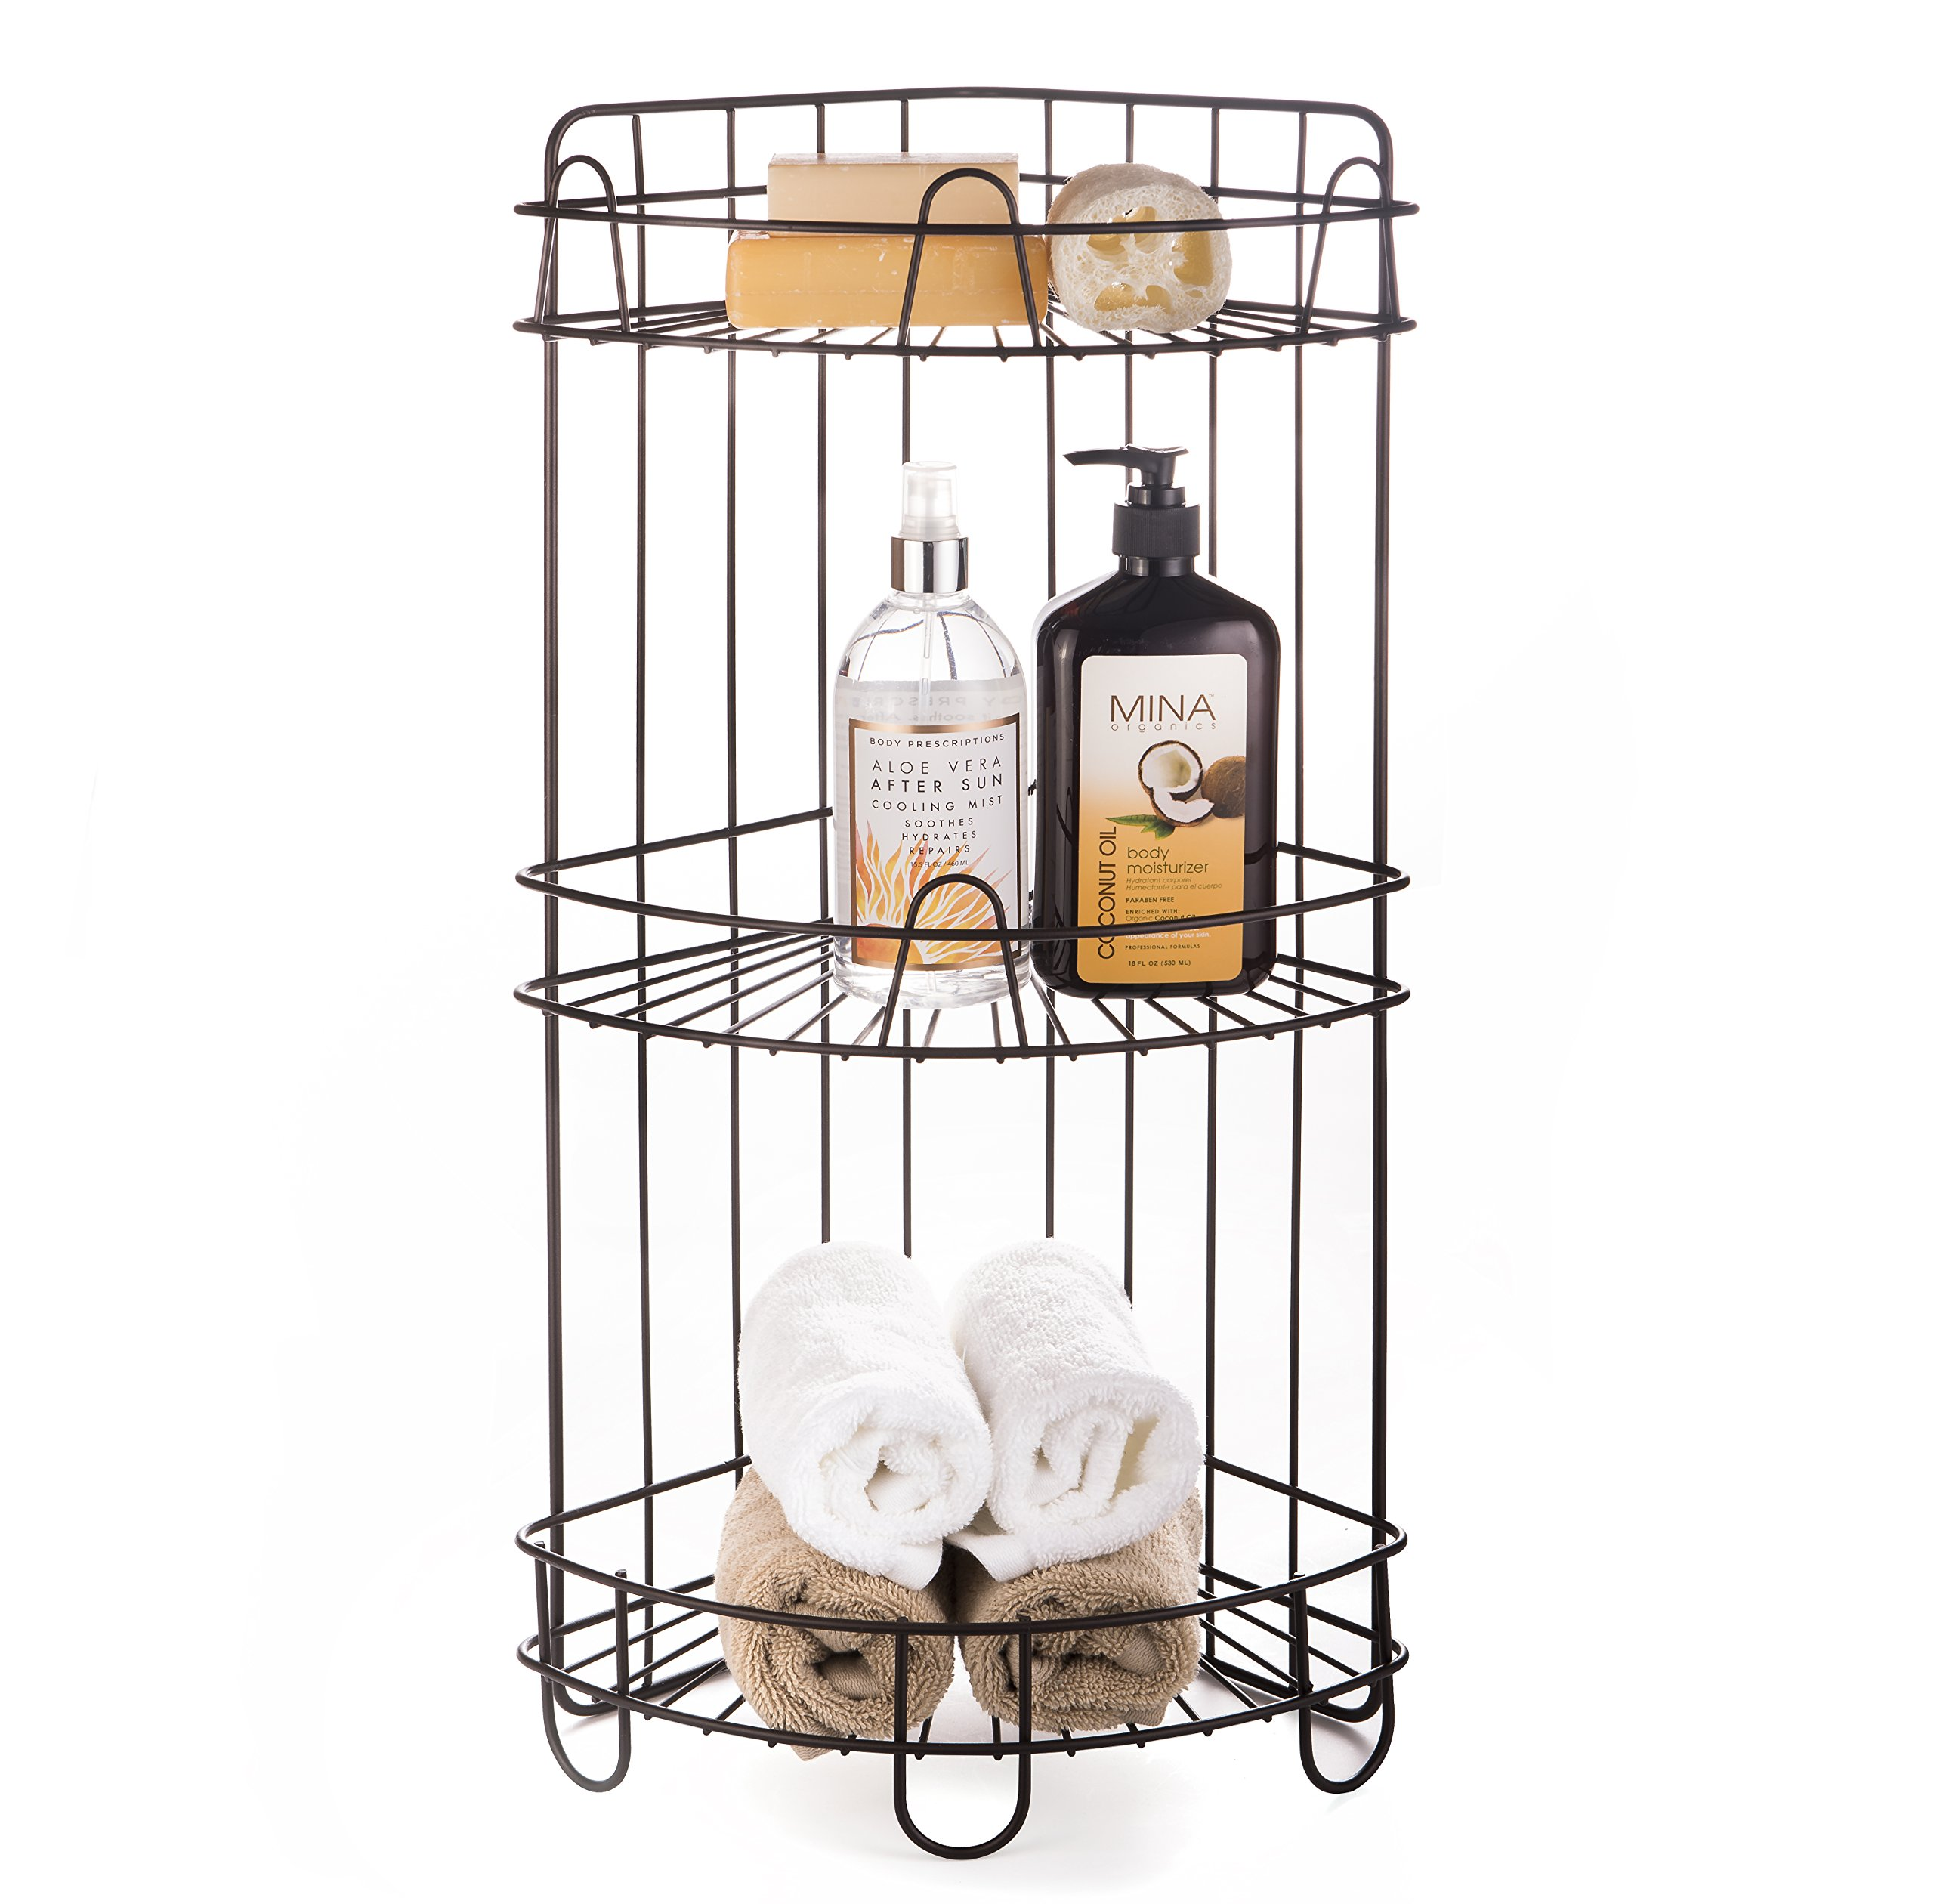 AMG and Enchante Accessories Free Standing Bathroom Spa Tower Storage Corner Caddy, FC100006 ORB, Oil Rubbed Bronze